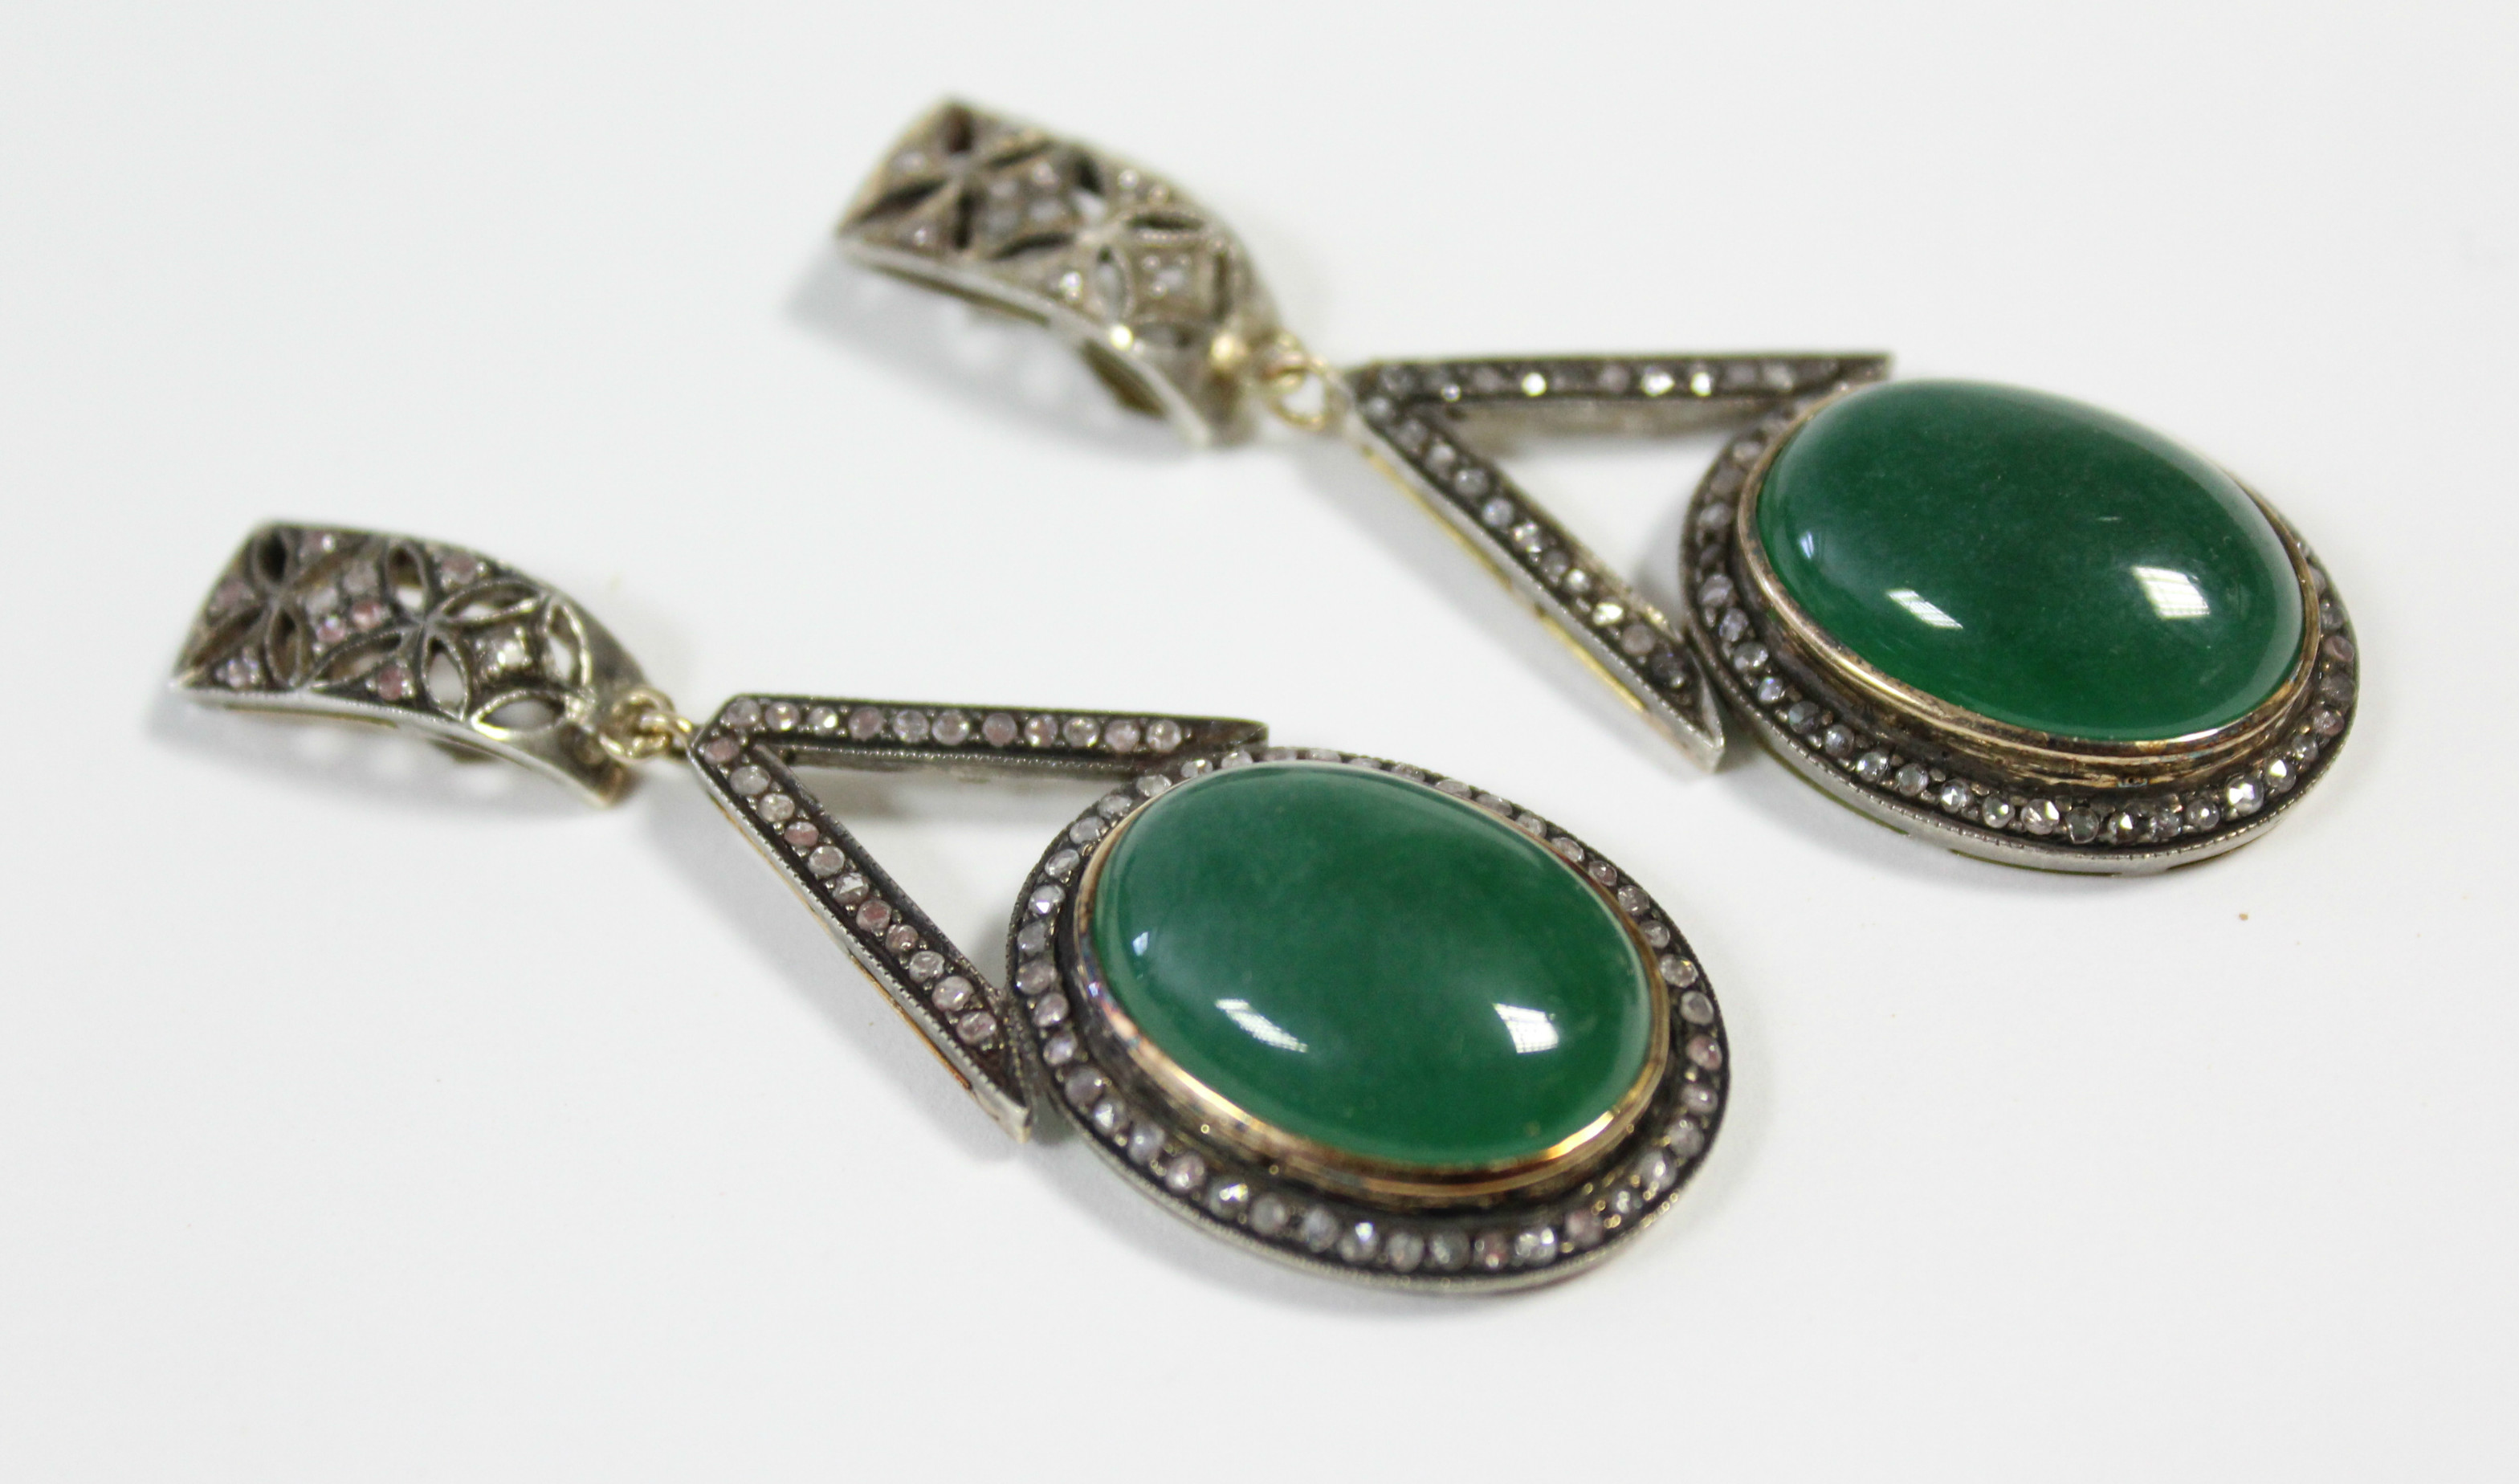 A PAIR OF JADE & DIAMOND PENDANT EARRINGS, each with oval green jade cabochon suspended from an - Image 2 of 6